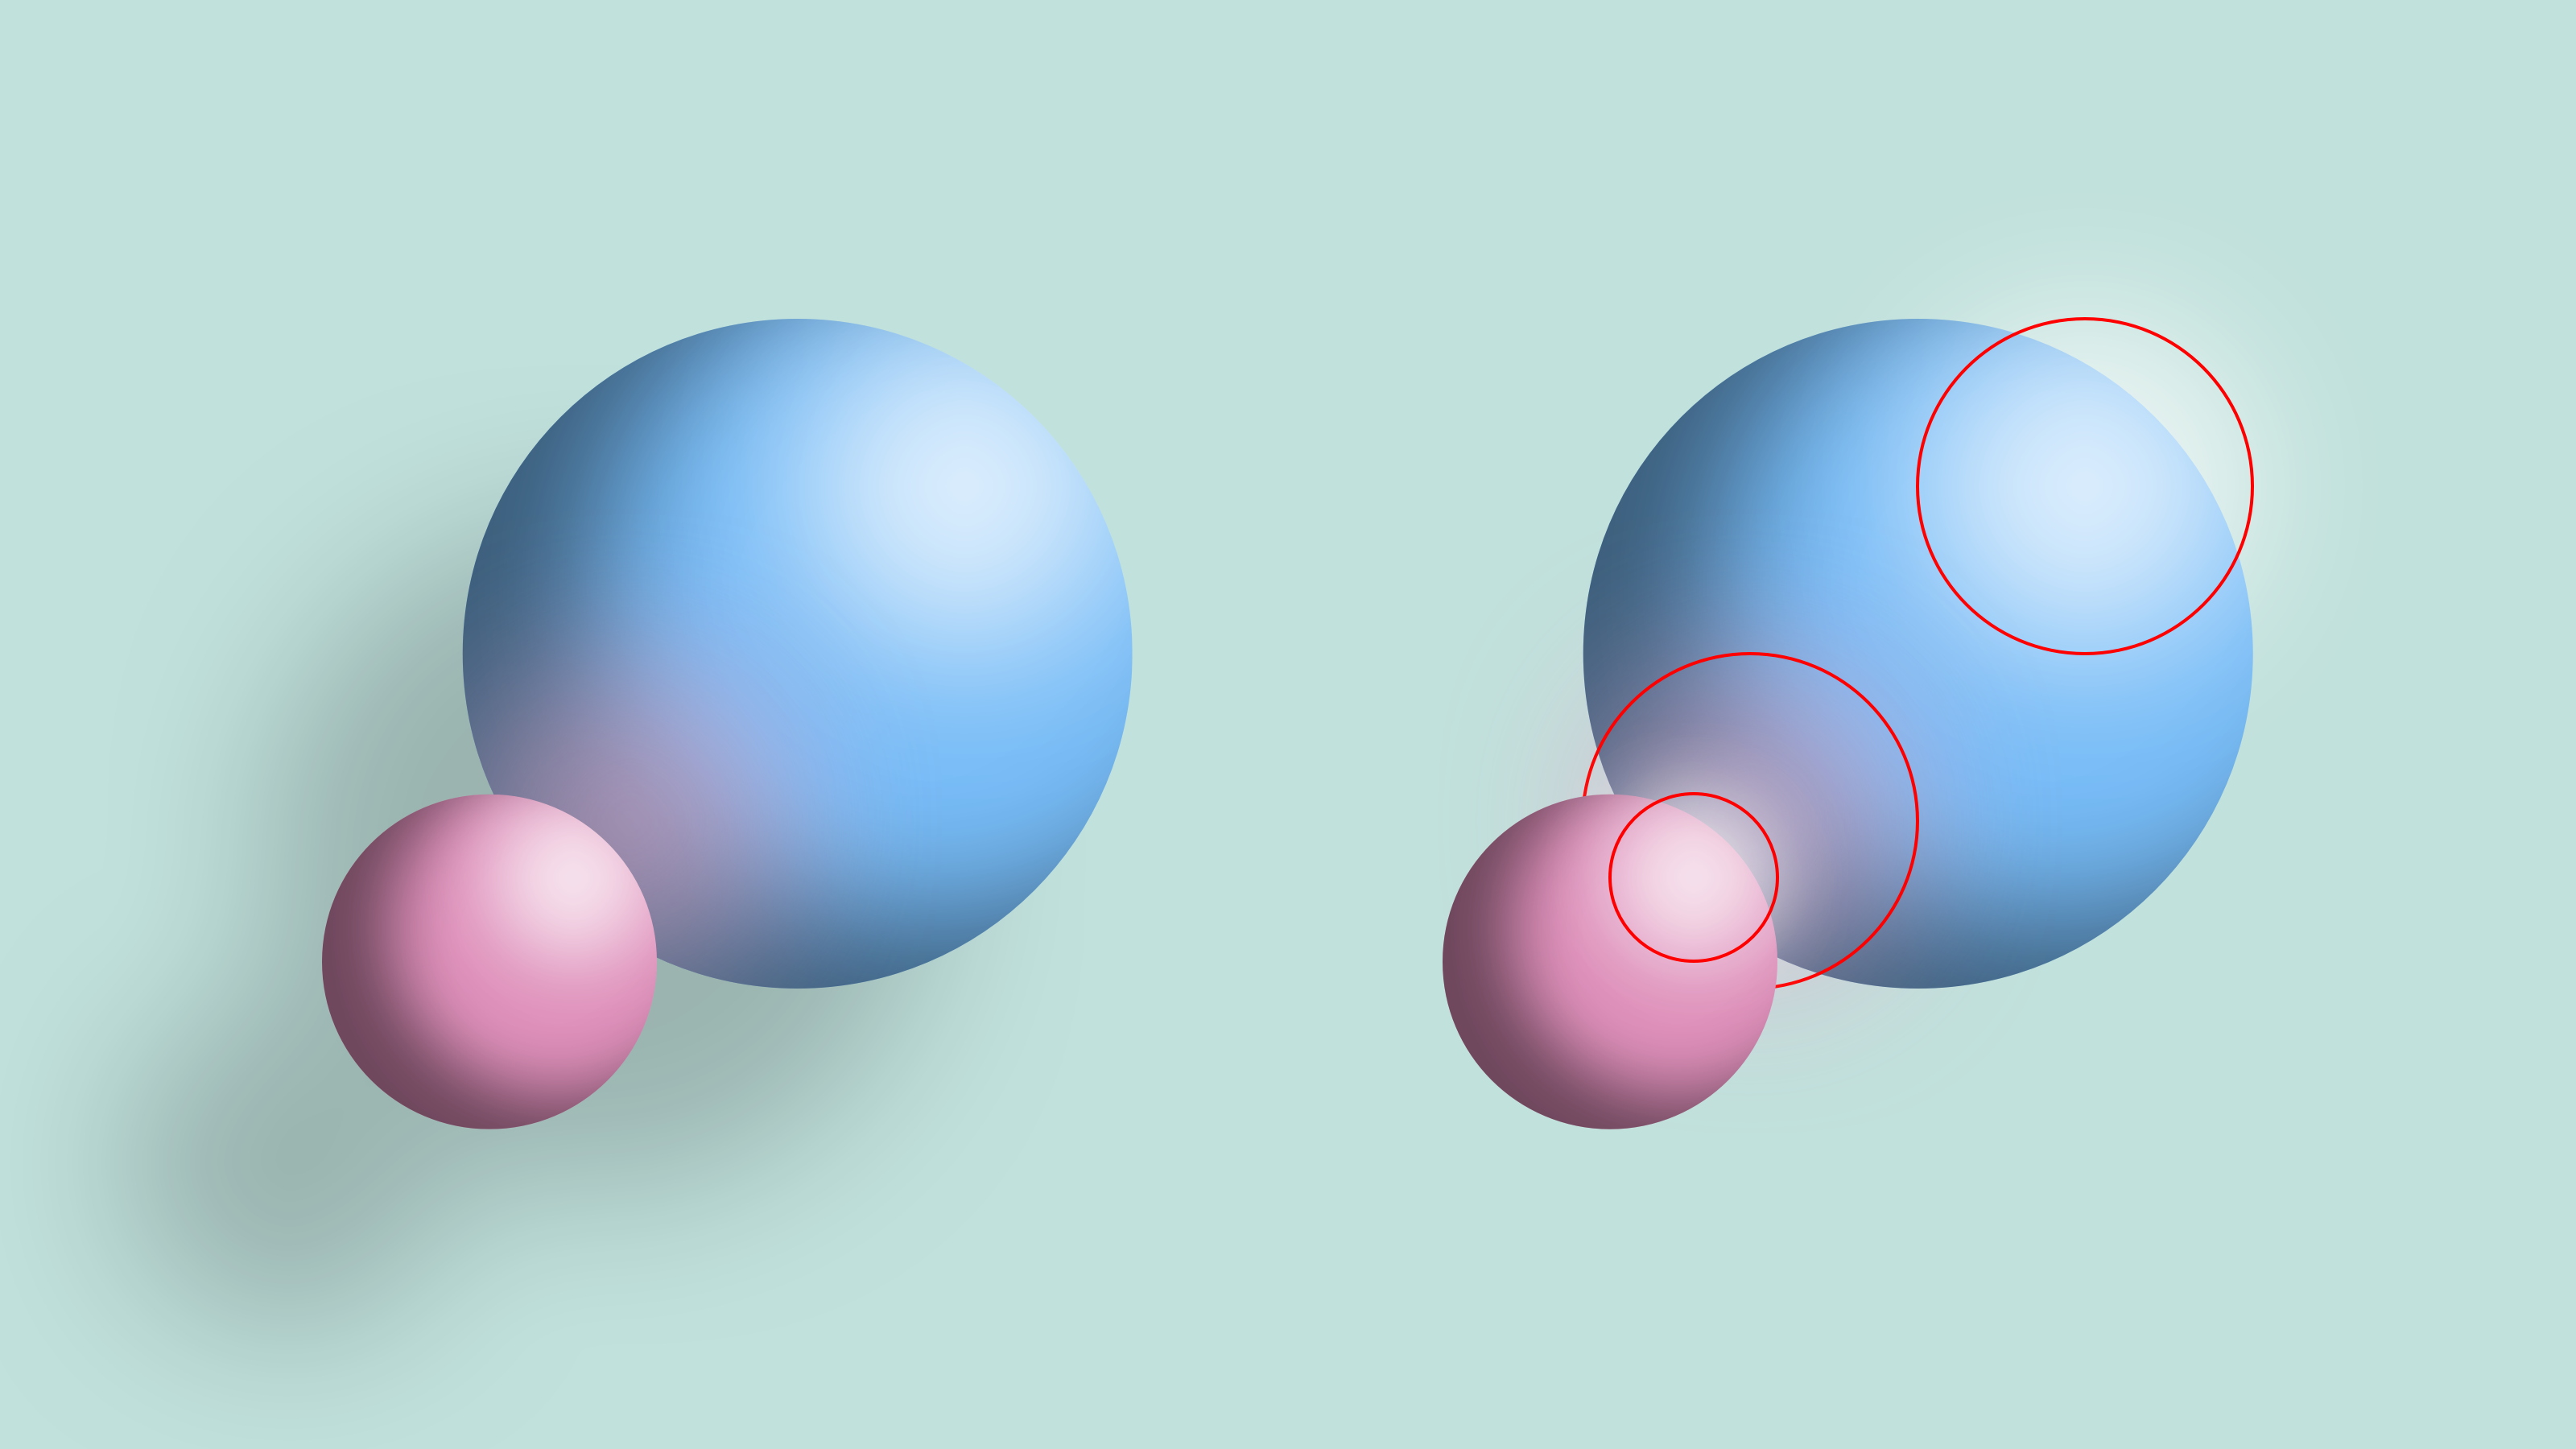 Explaining the layer setup of light elements reflecting on the two spheres of the sample image